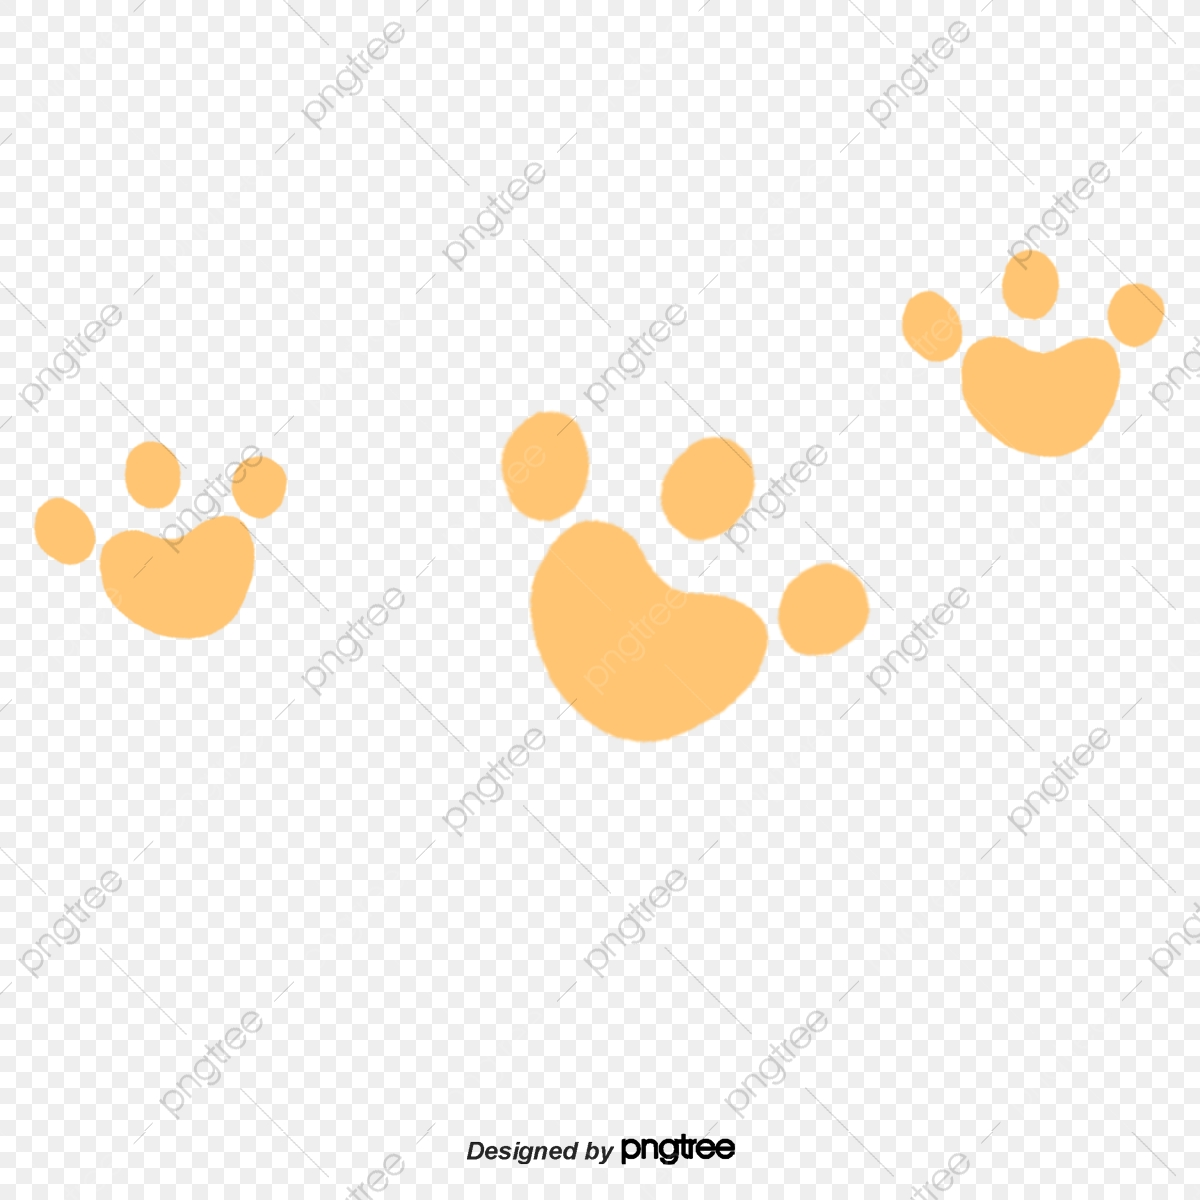 Several Orange Dog Paw Prints Paw Clipart Orange Print Png Transparent Clipart Image And Psd File For Free Download Pikbest has 241 paw print design images templates for free. https pngtree com freepng several orange dog paw prints 4843069 html